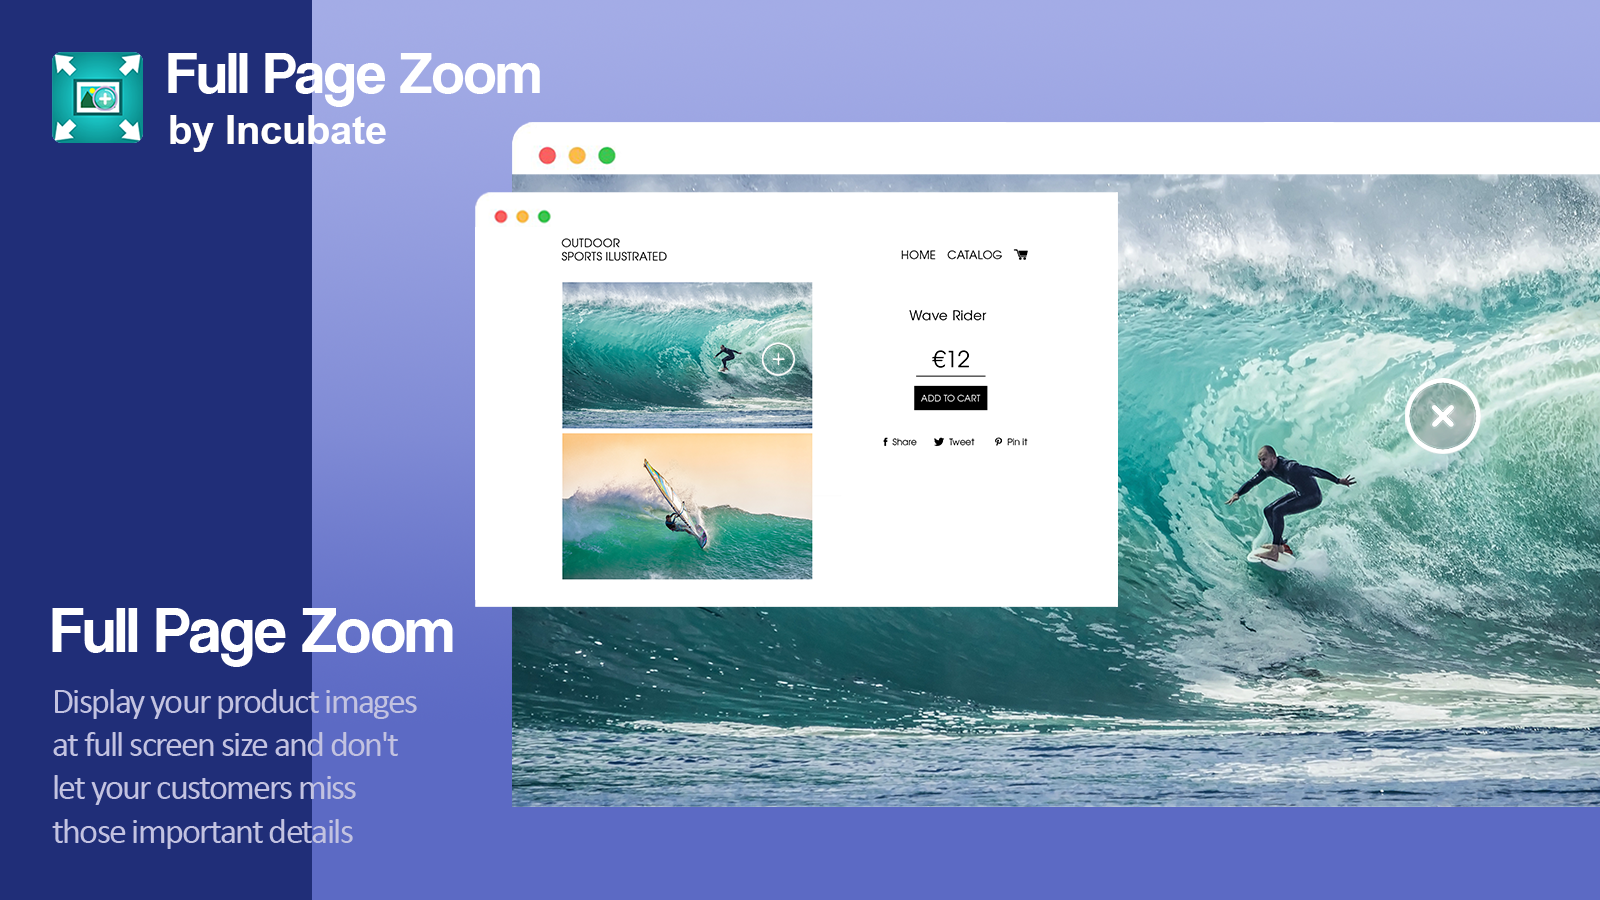 Display your product images at full-screen size